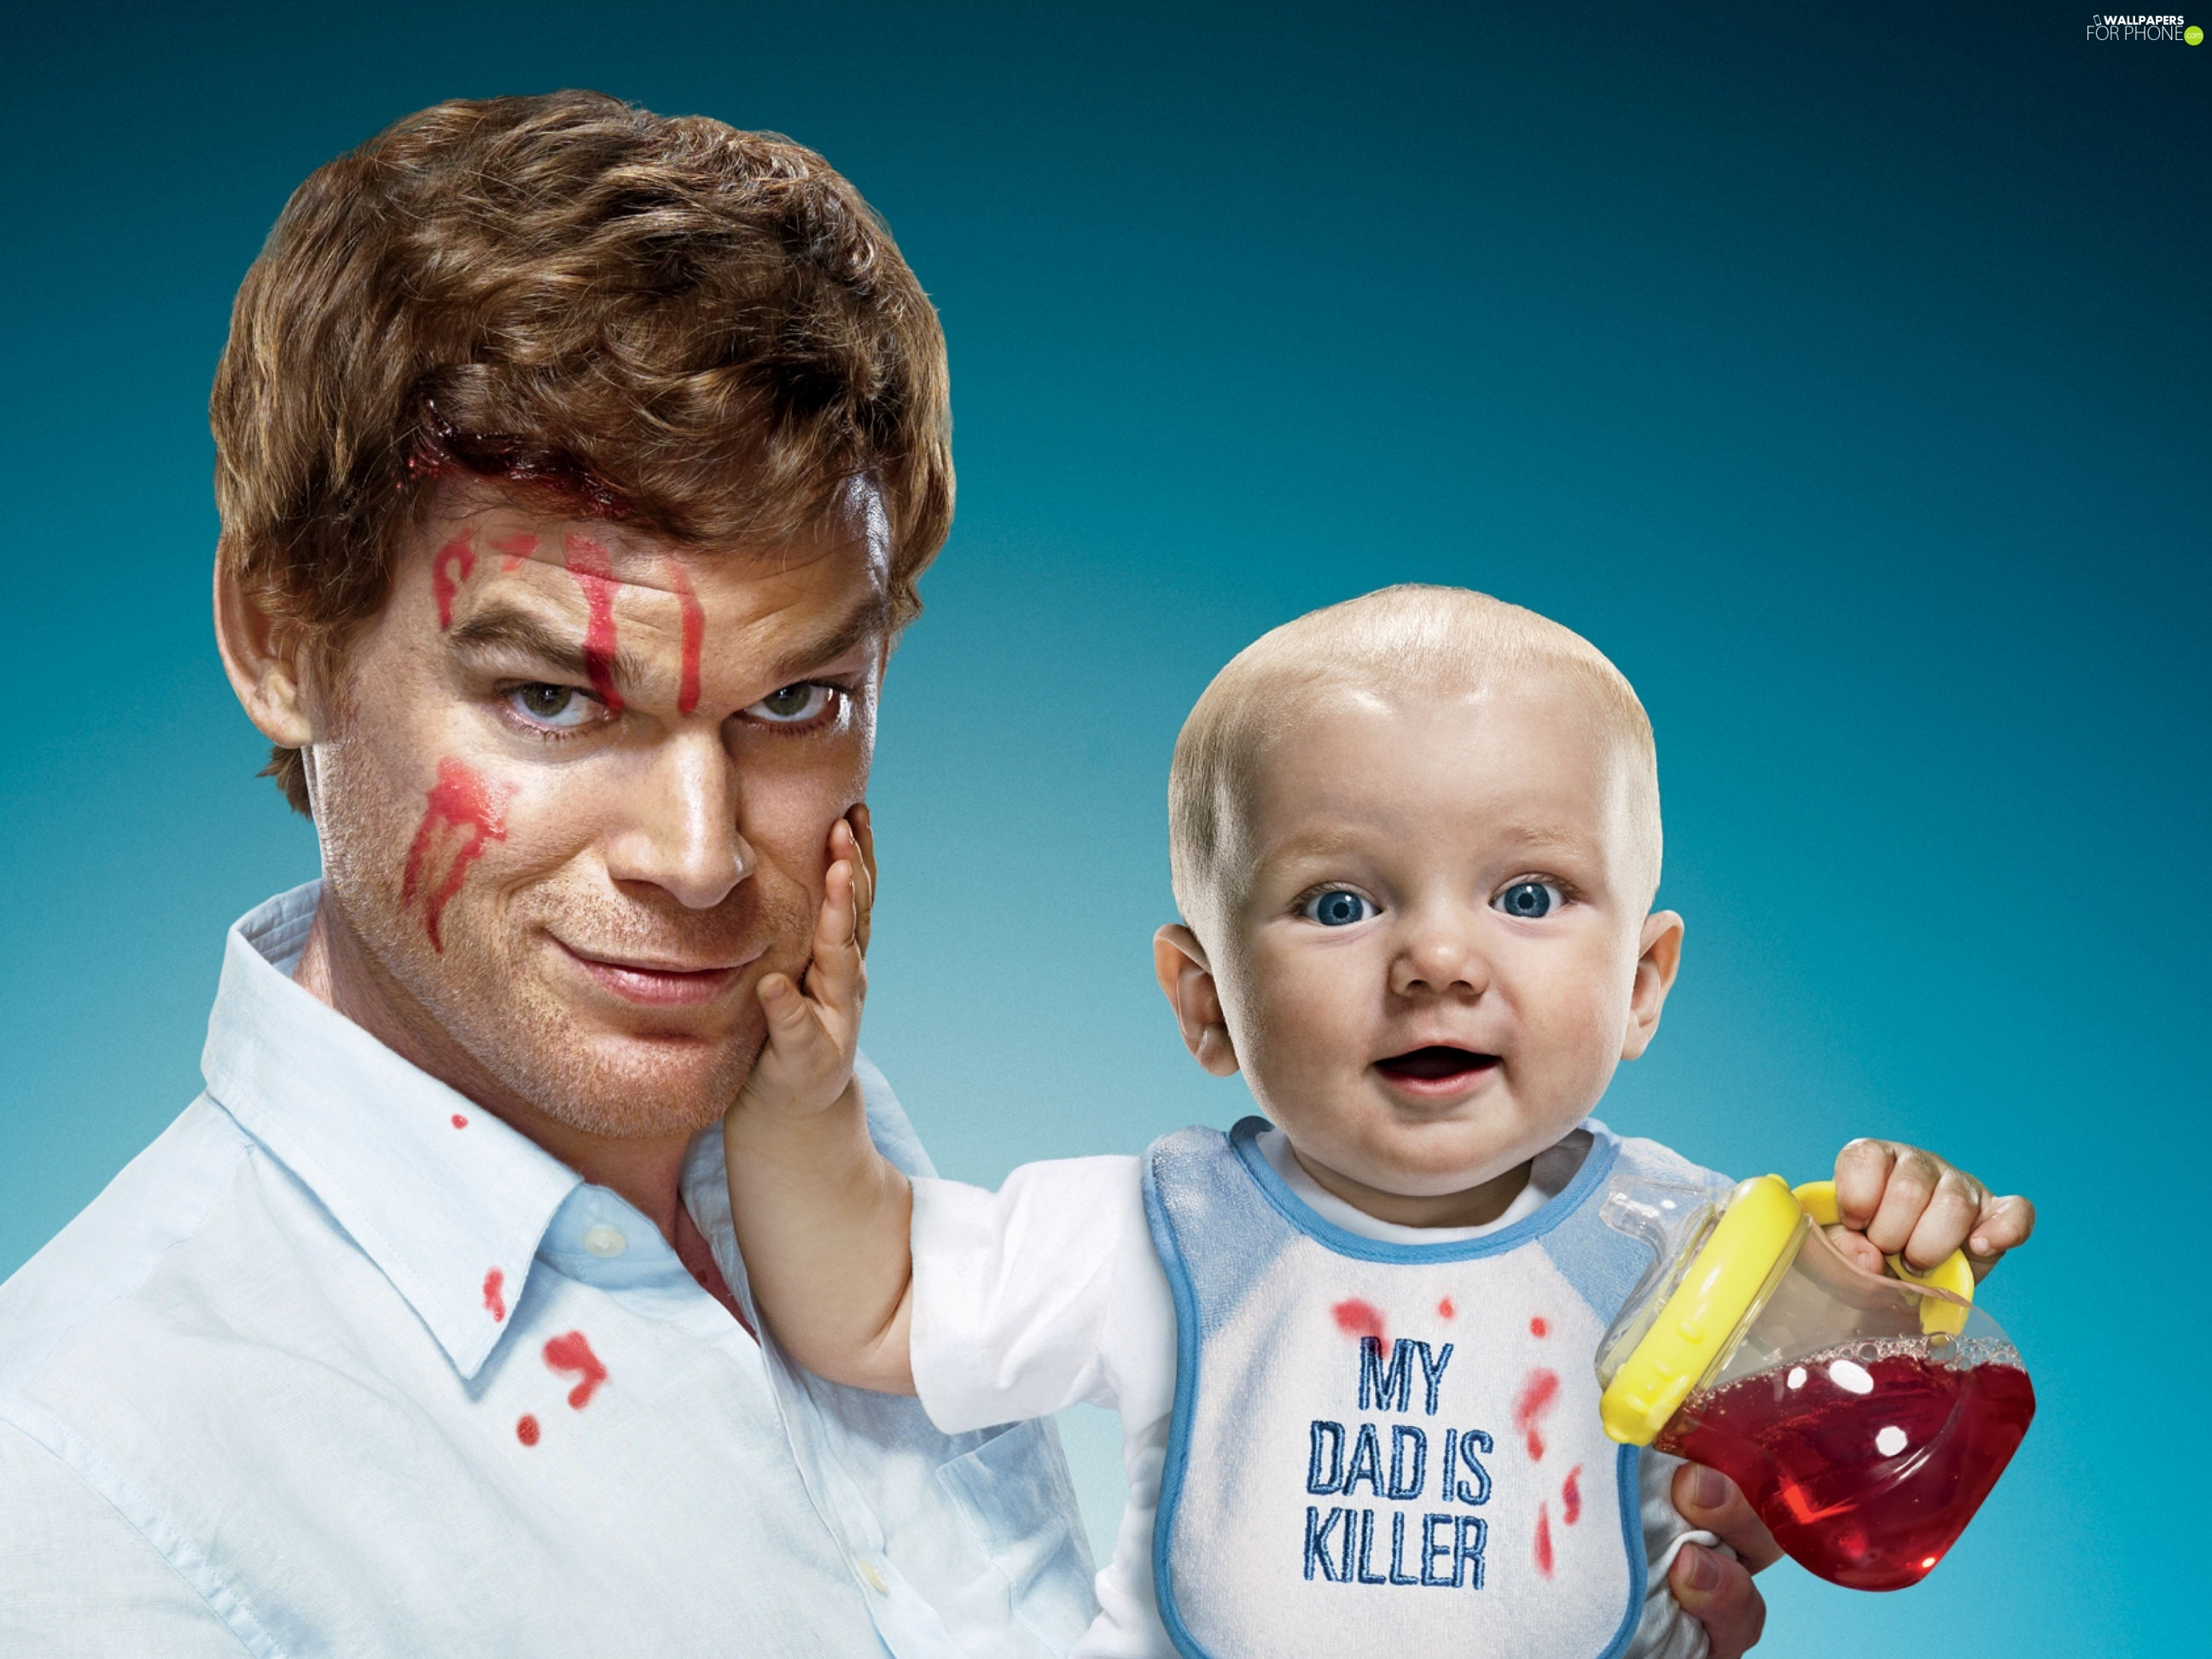 a man, Cup, Michael C. Hall, Kid